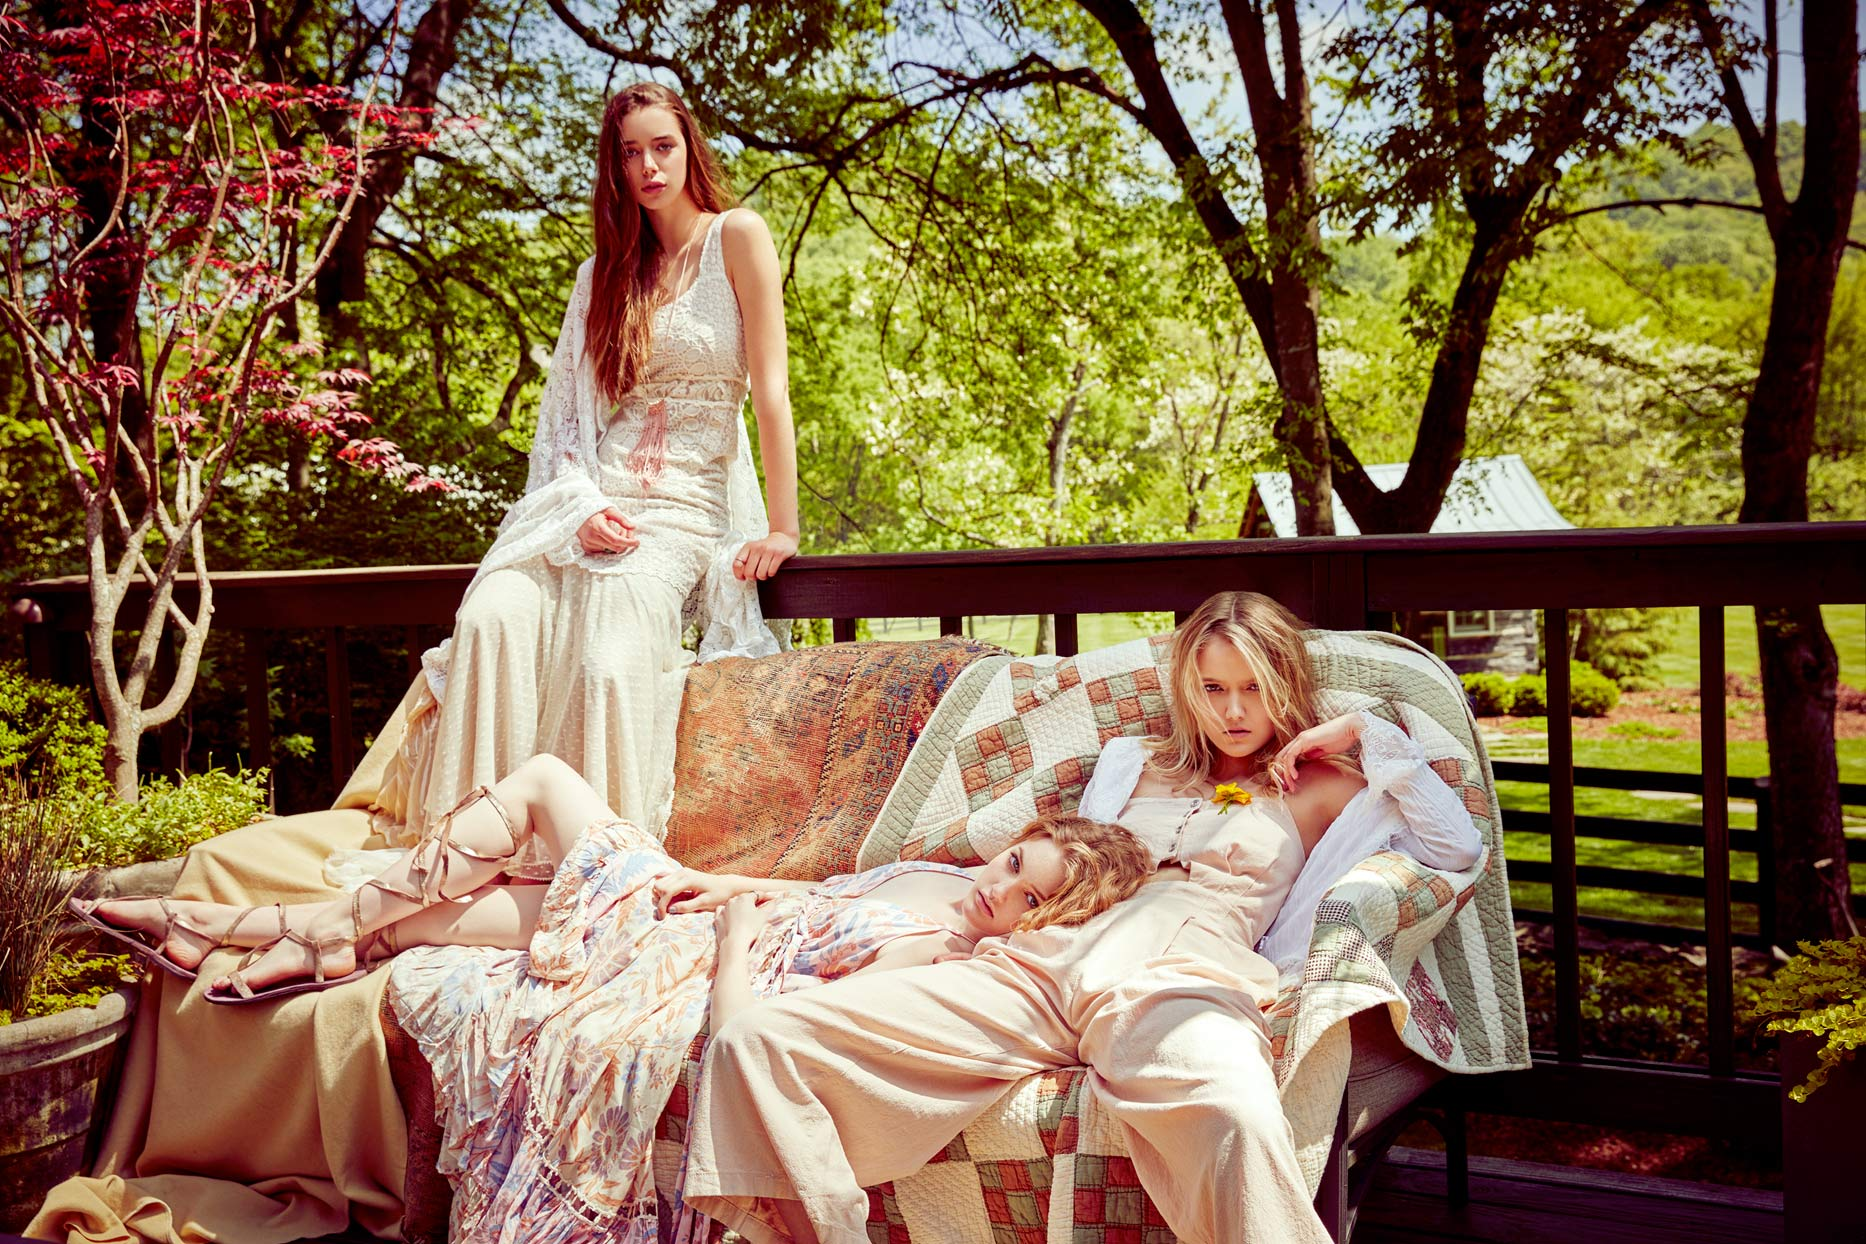 Three women wearing vintage designer dresses and clothing sitting on quilts at a country home - Mark DeLong: Fashion Gallery